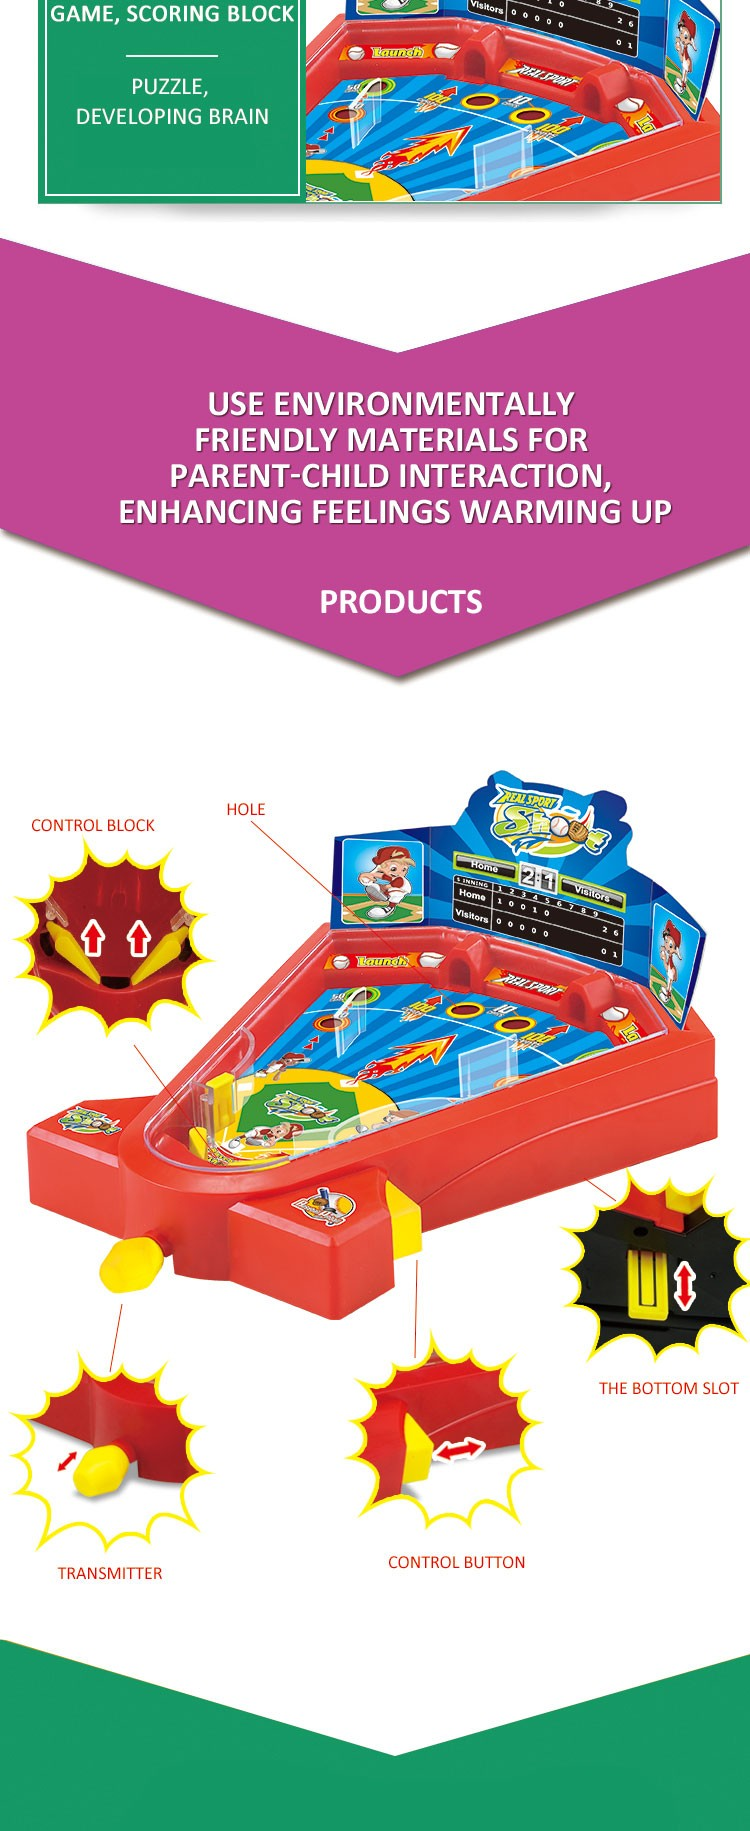 2016 Plastic Toy China Import Toys Games